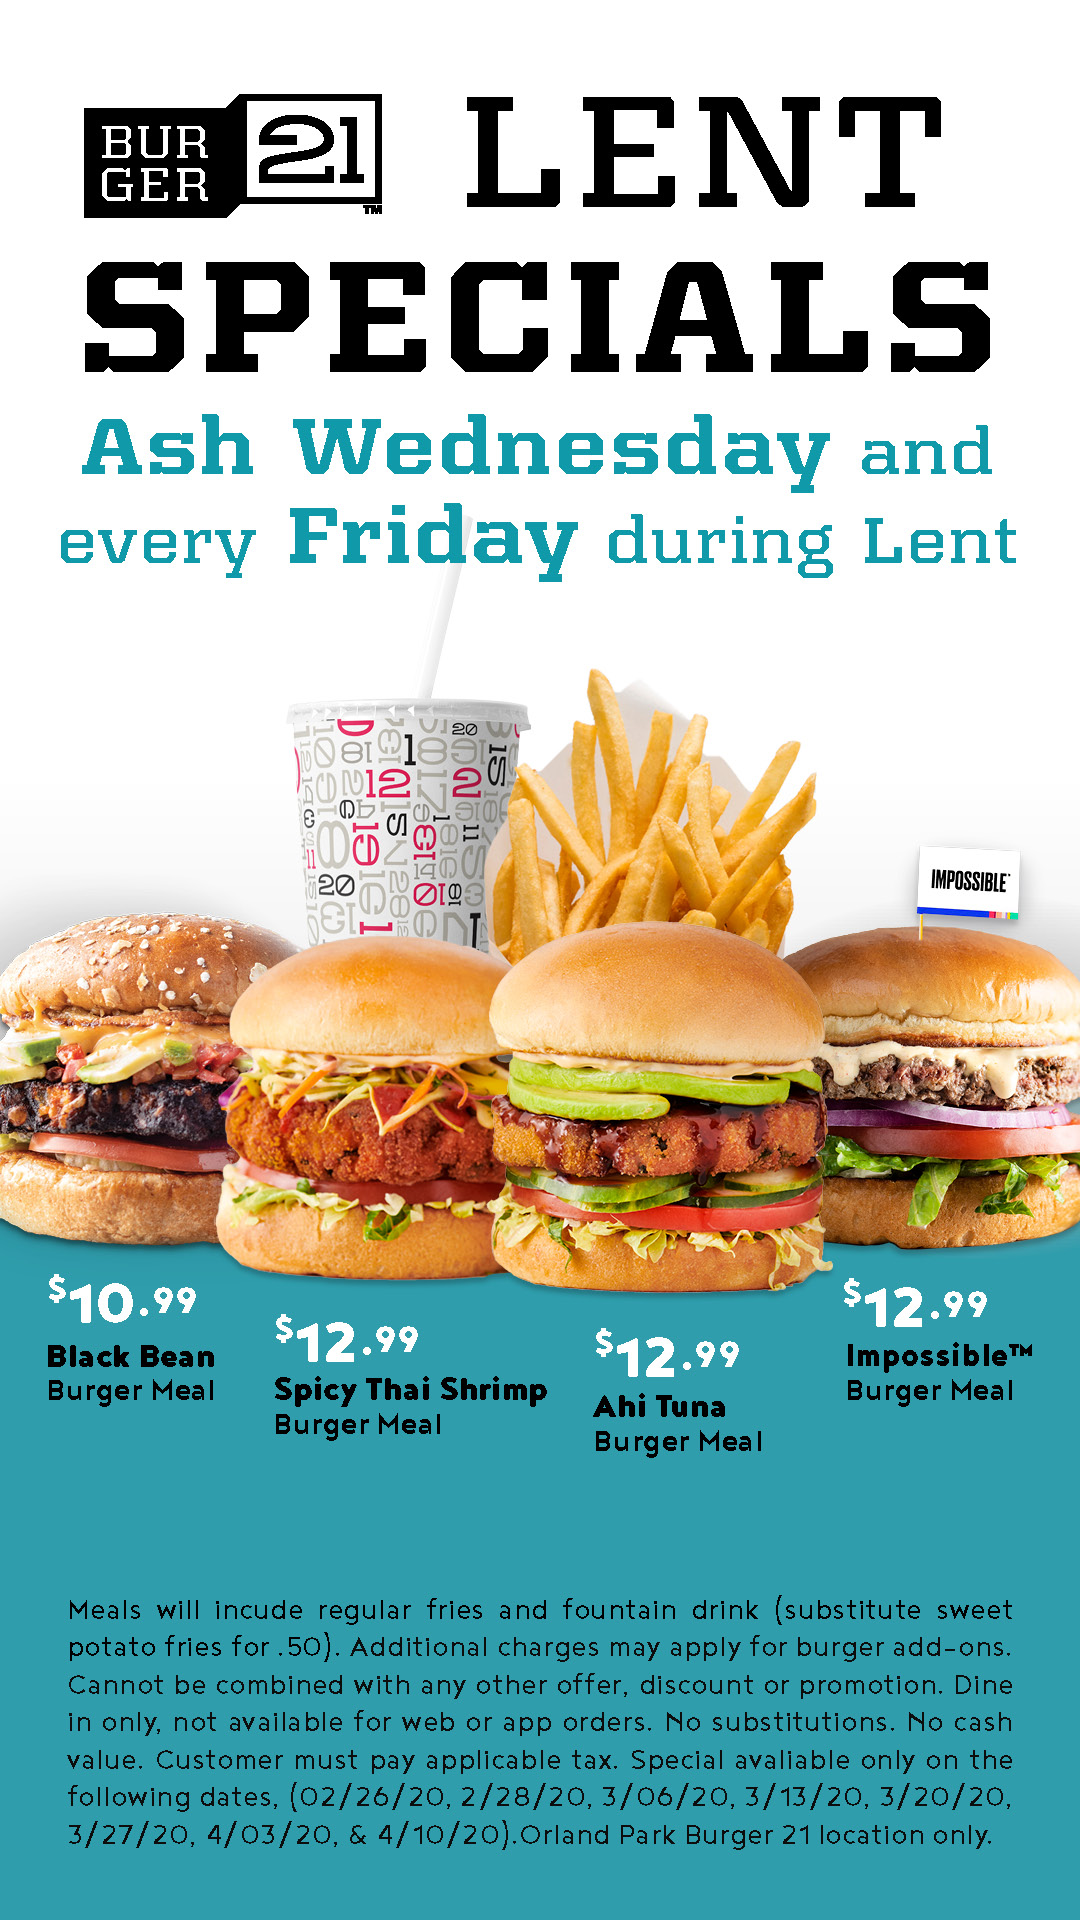 Lent Specials on Ash Wednesday & every Friday during Lent